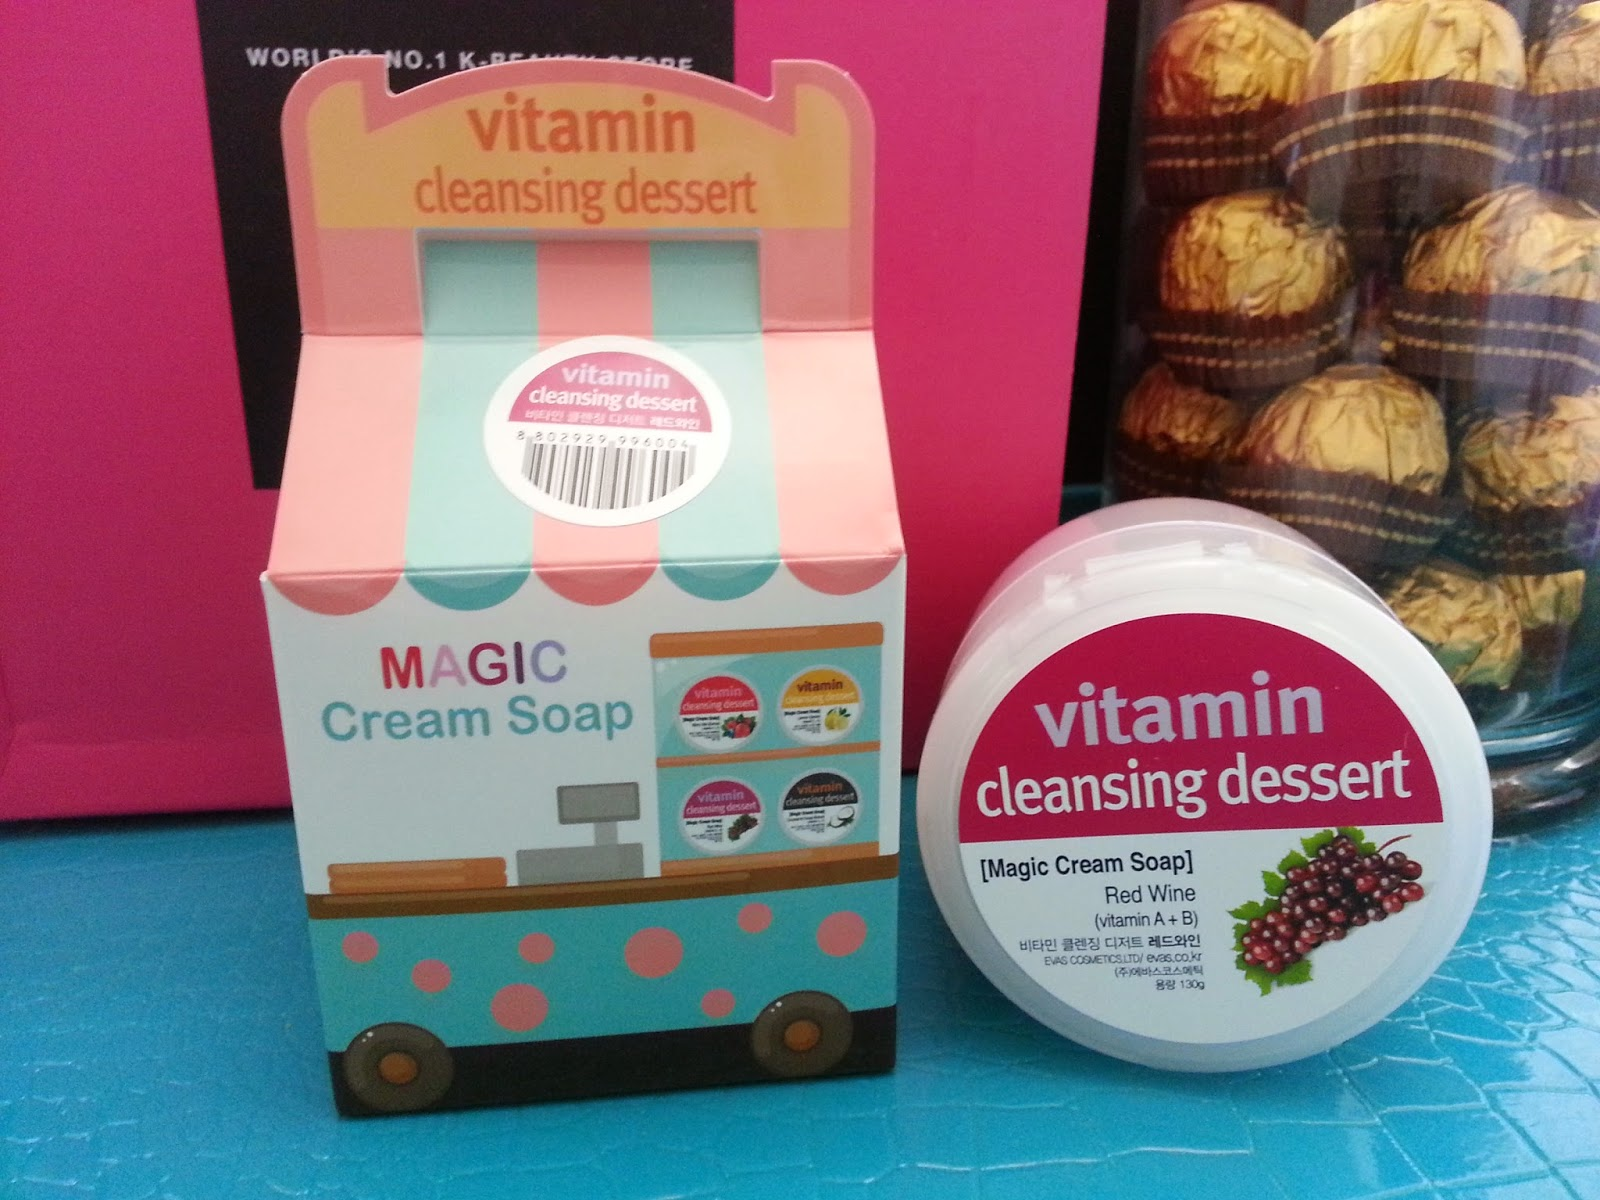 Evas Cosmetics Vitamin Cleansing Dessert